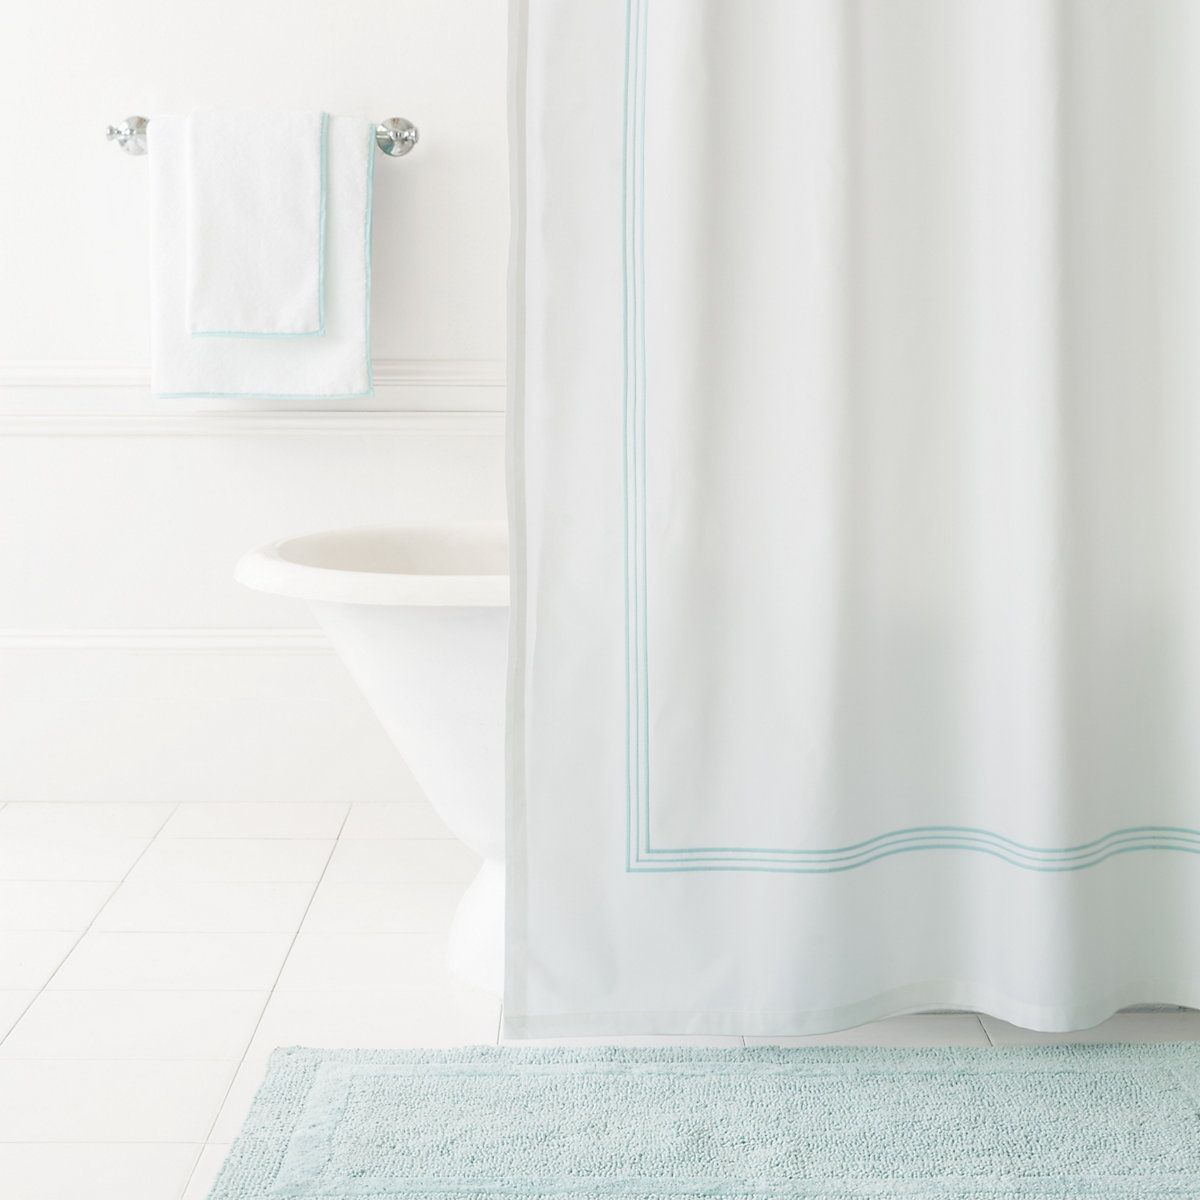 Trio Sky Shower Curtain | Bath rugs, Towels and Bath